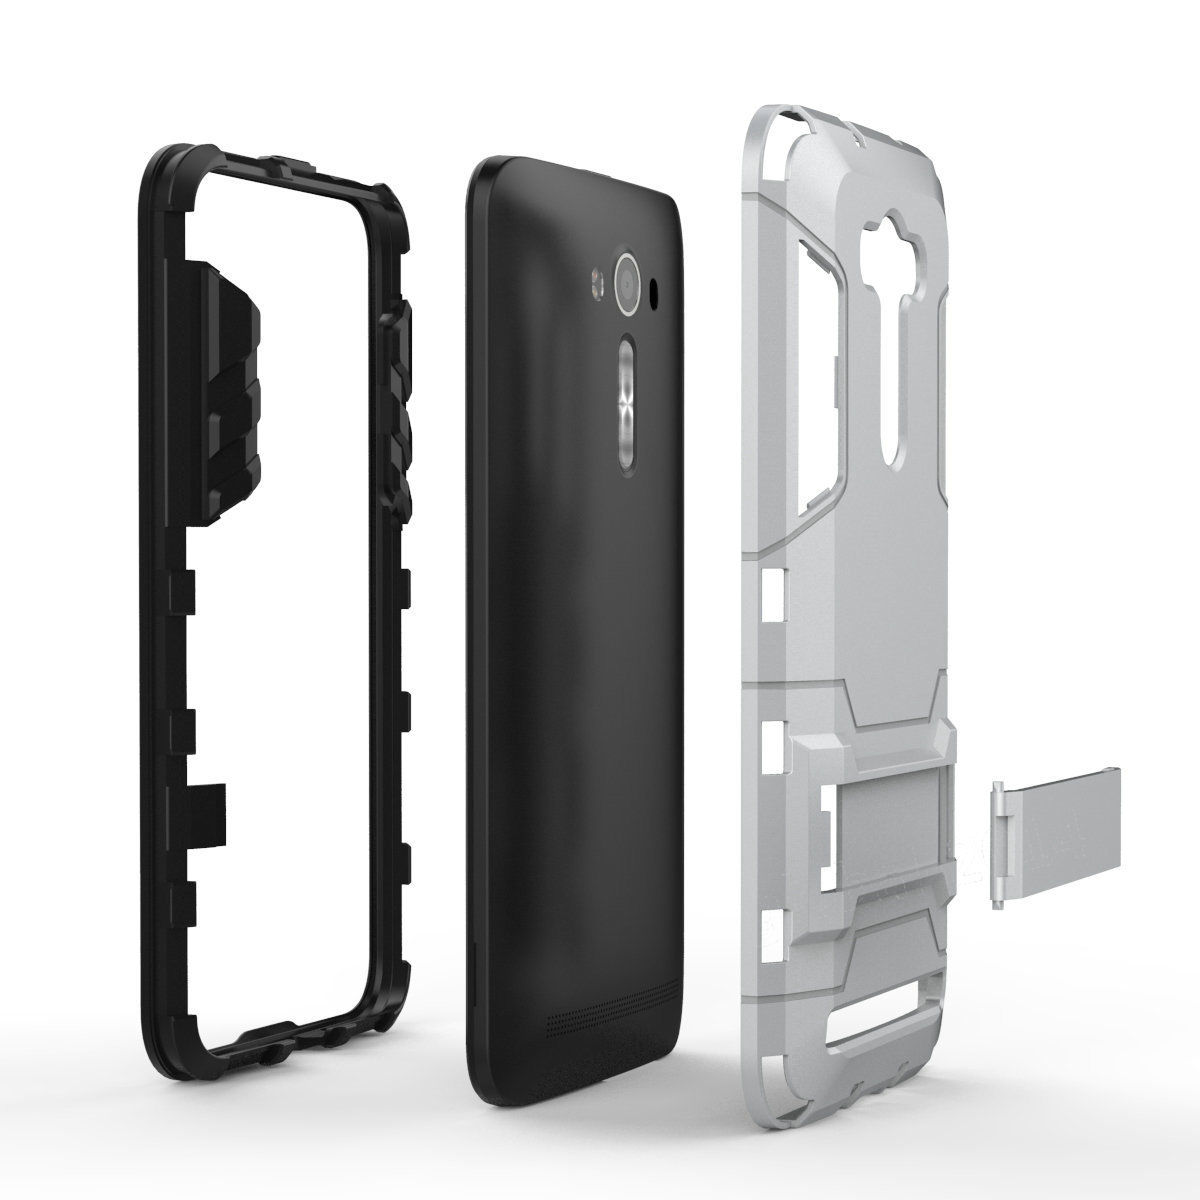 Shockproof Armor TPU+PC Case Stand Cover For ASUS Zenfone 2